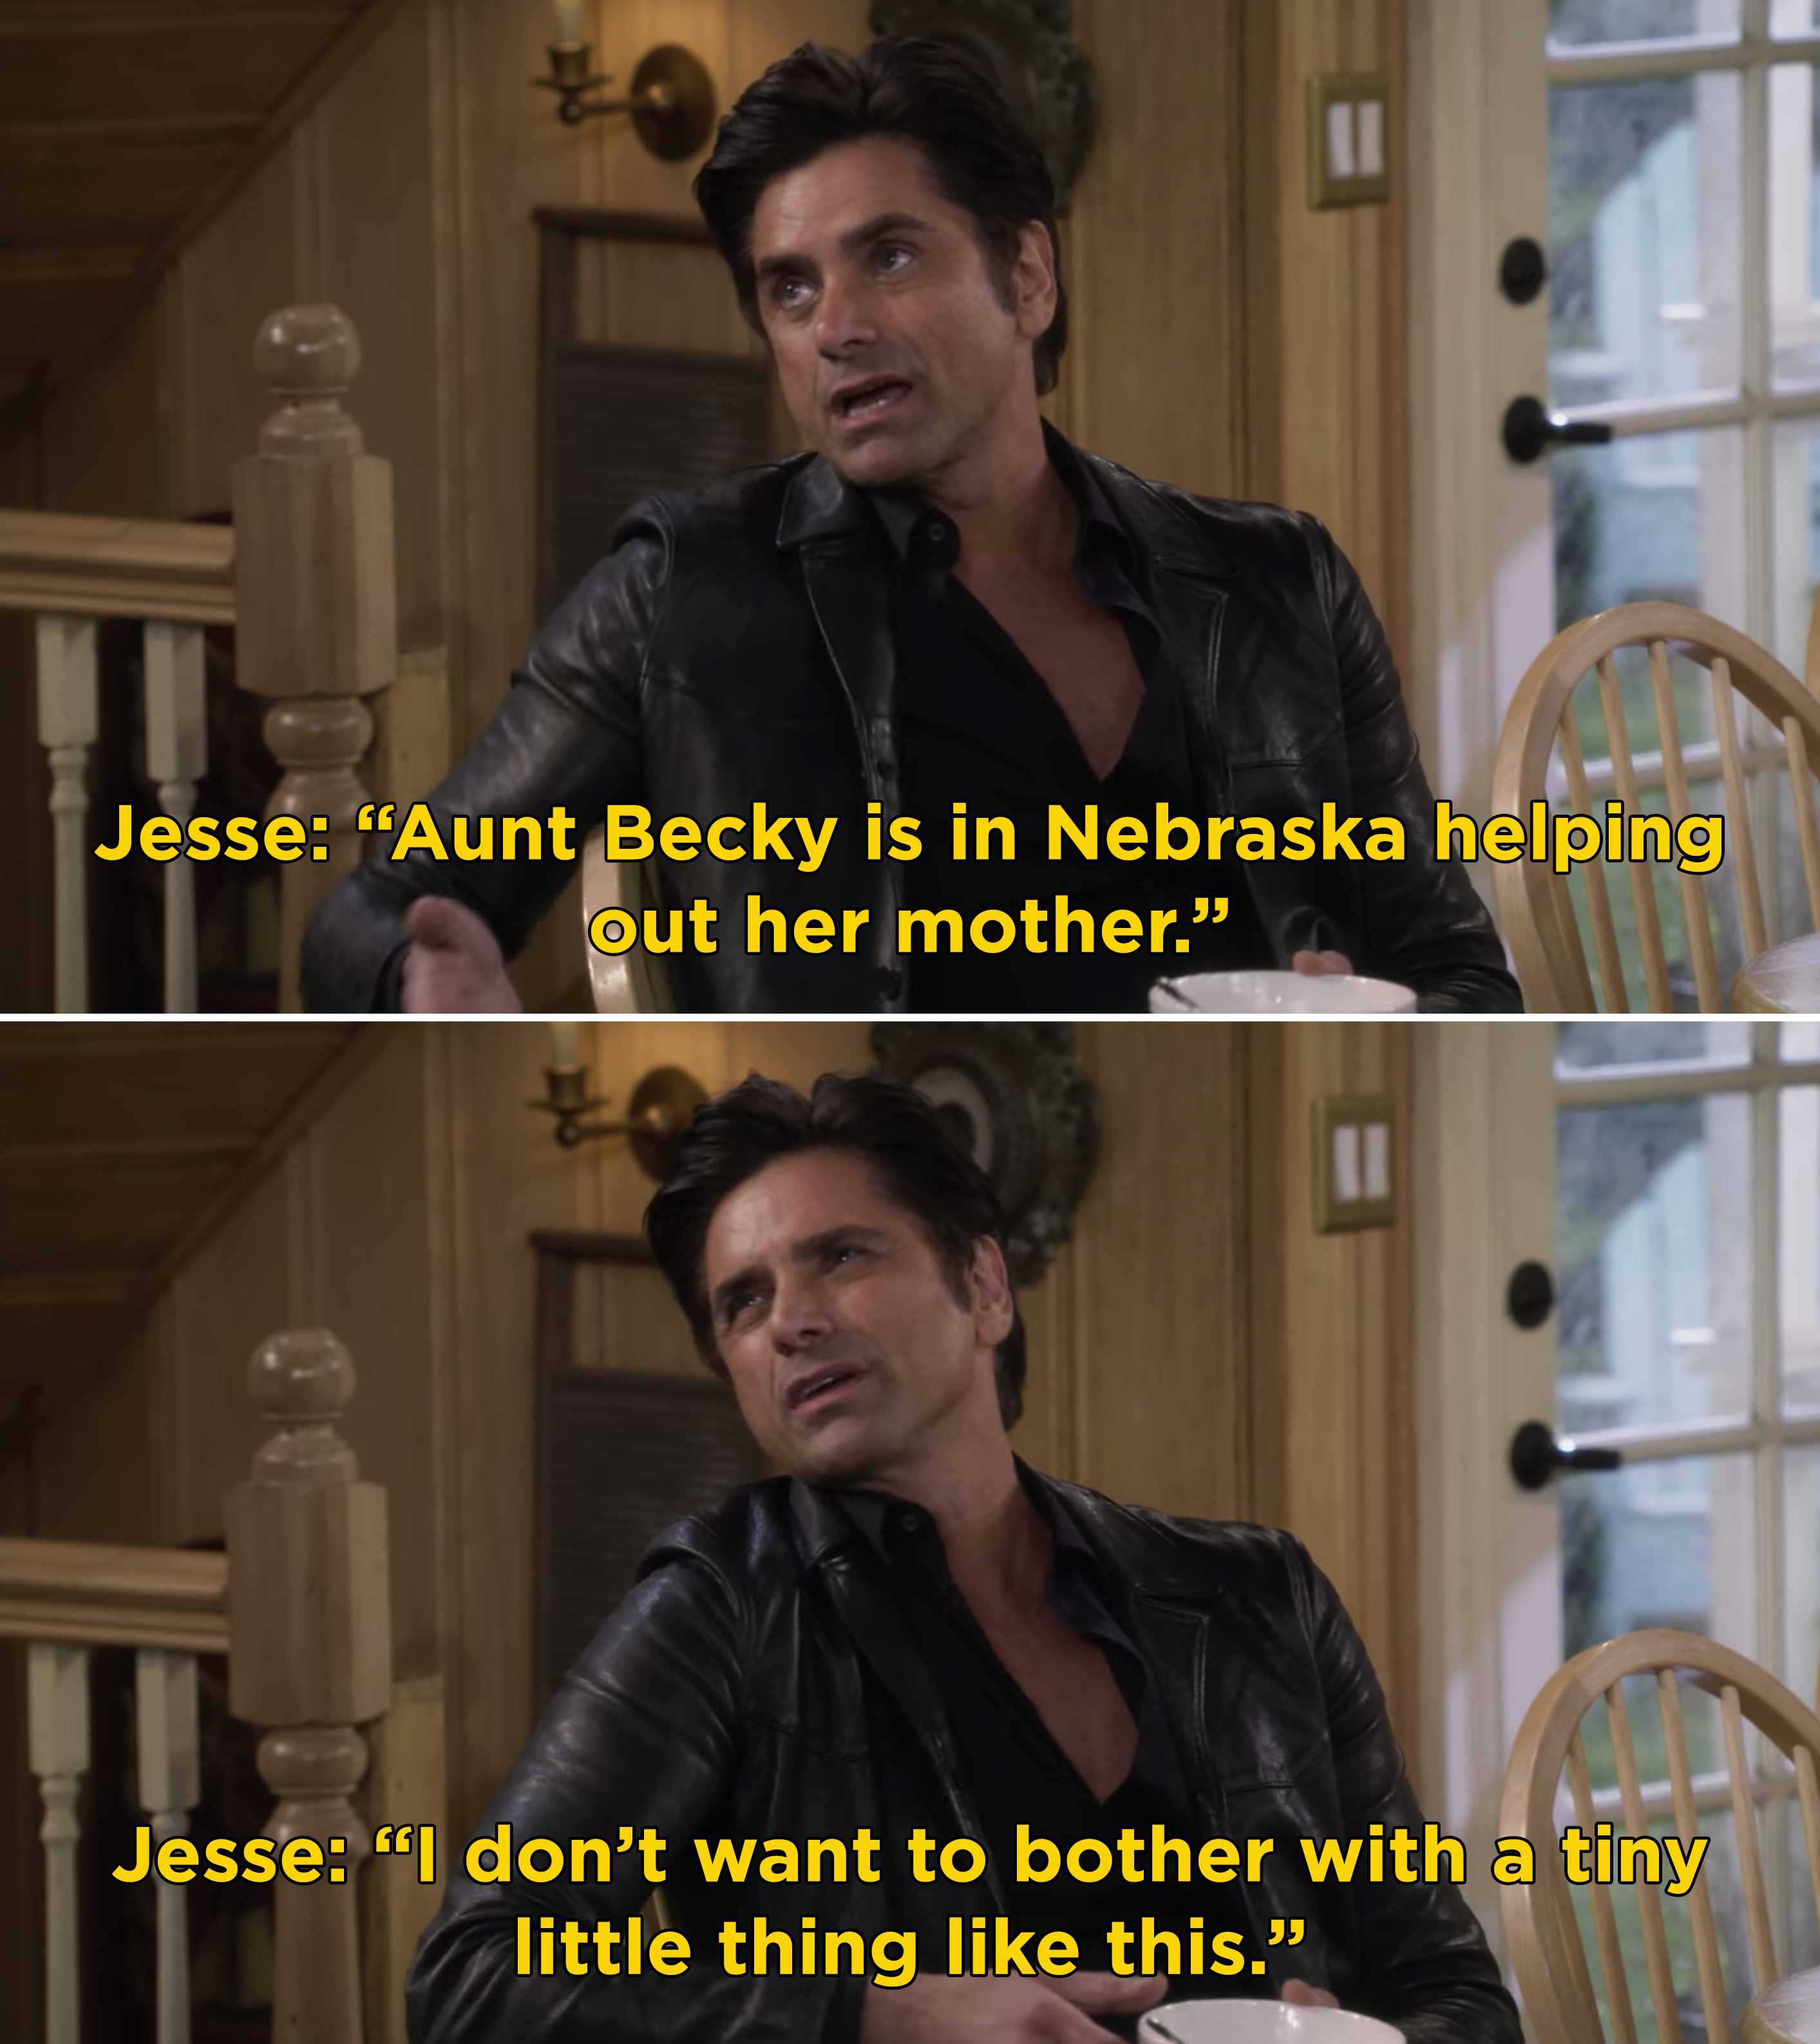 Jesse saying that Becky is in Nebraska helping her mother and he doesn't want to bother her